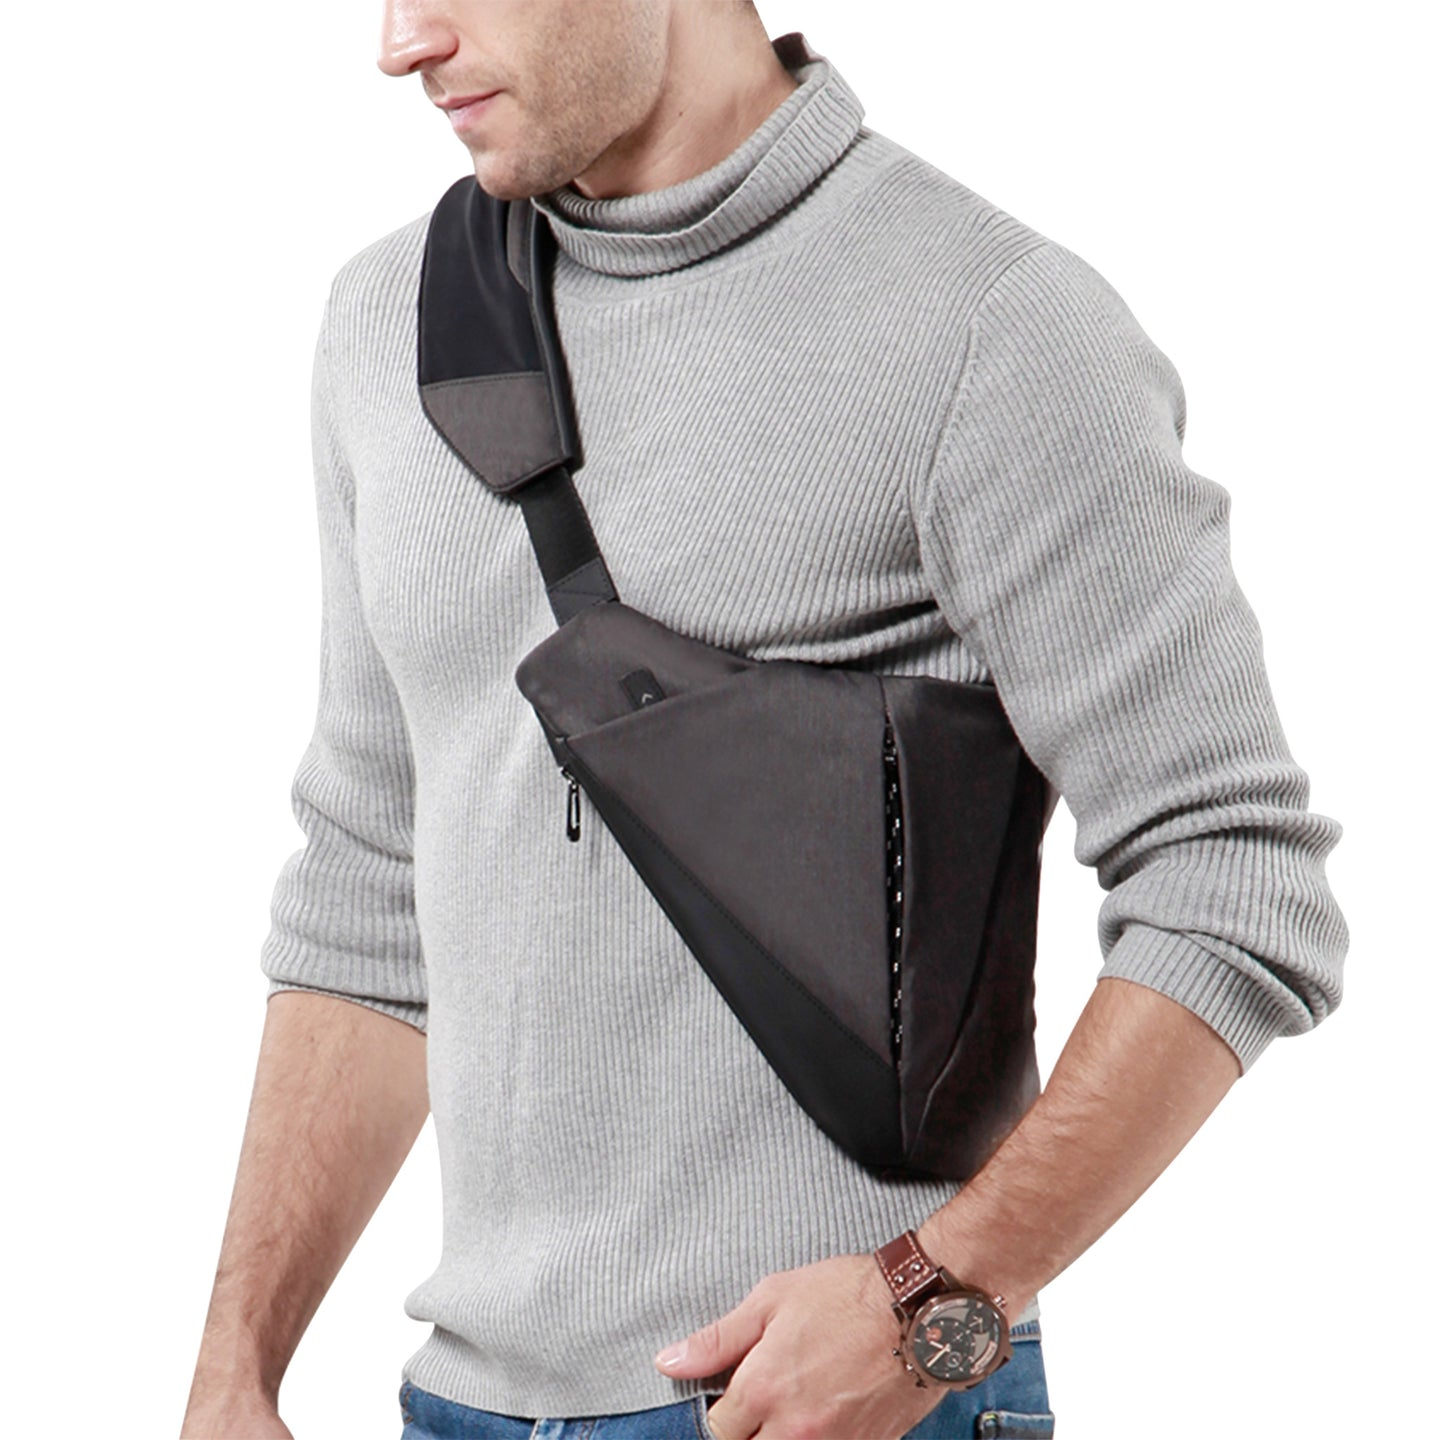 NIID X Urbanature Switch Chest Pack